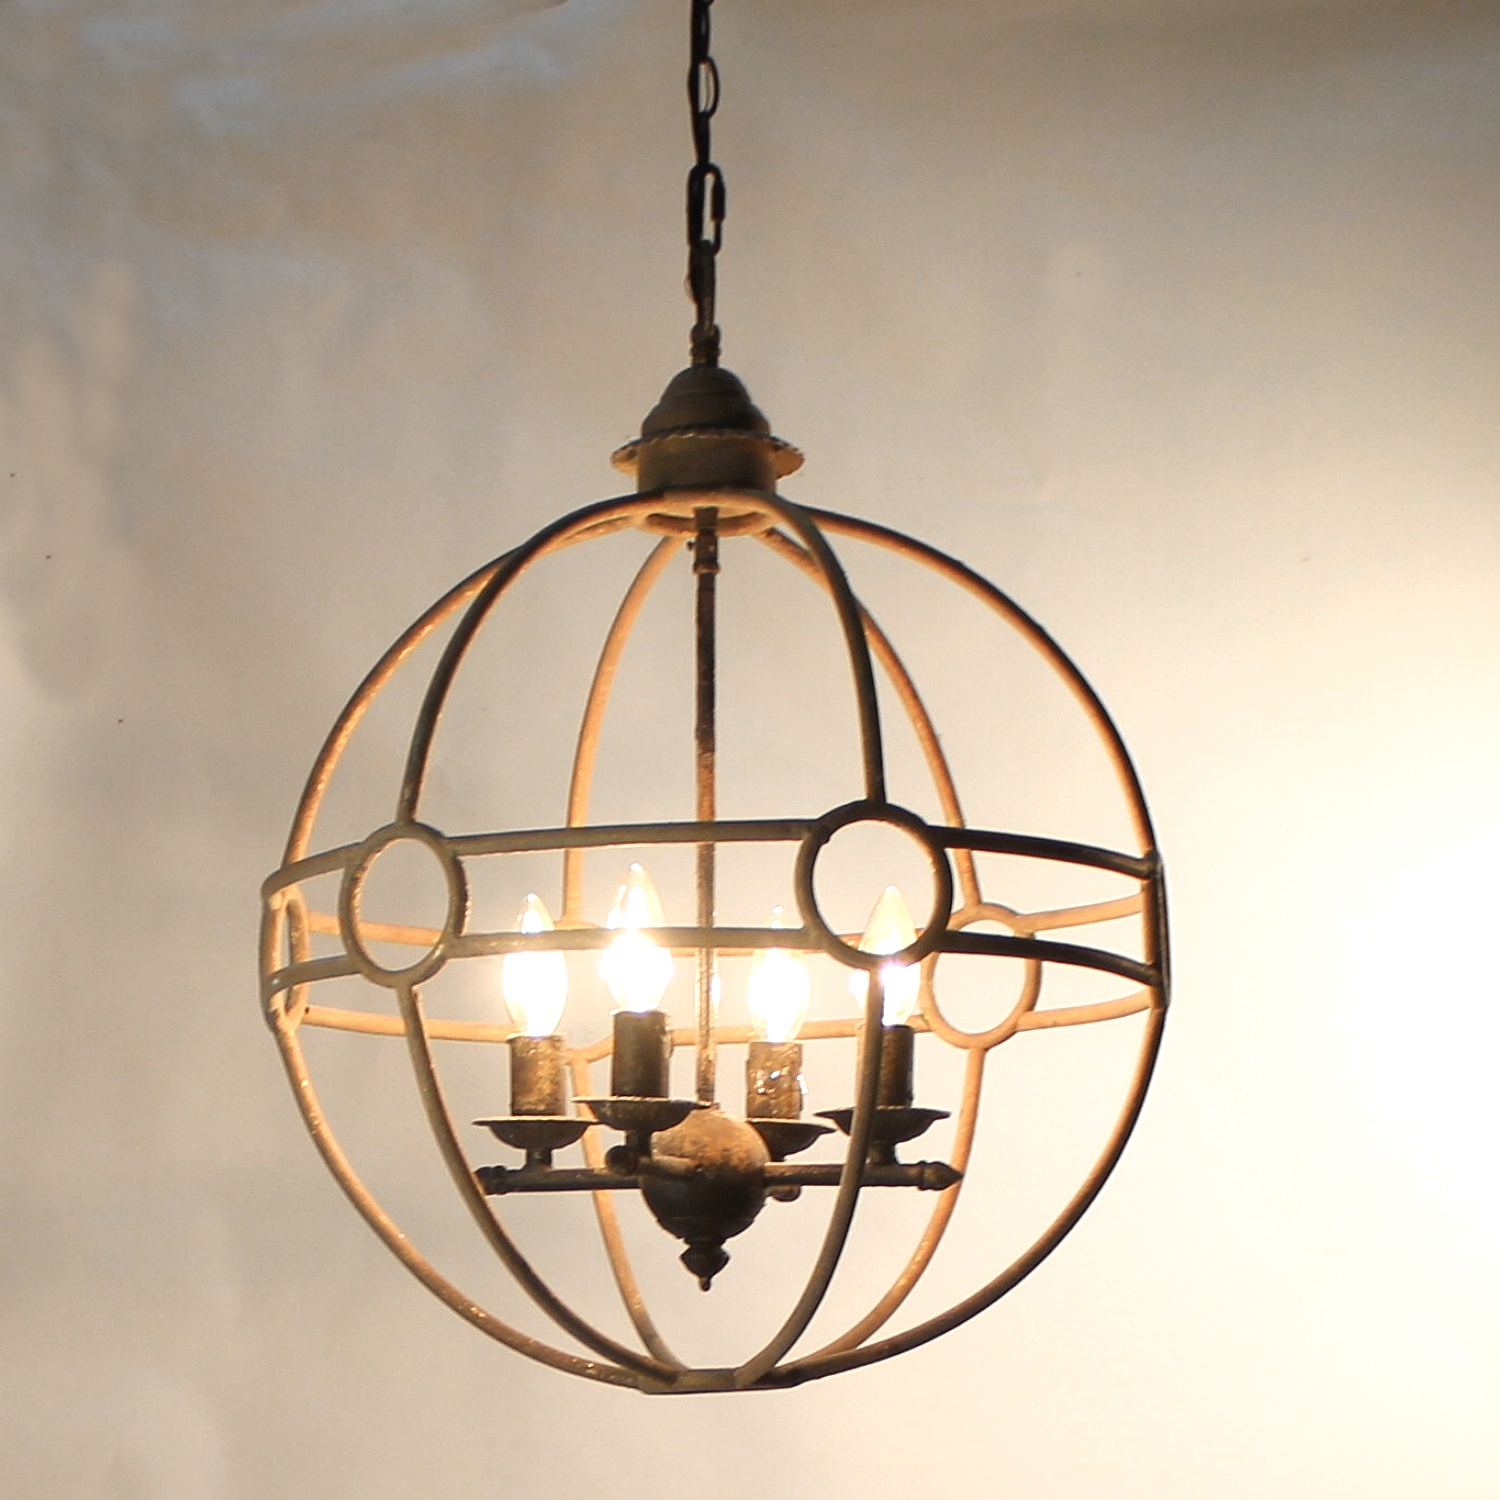 Round Chandelier Rusted Finish Artistic 4 Bulb Orb Pendant Fixture The Kings Bay